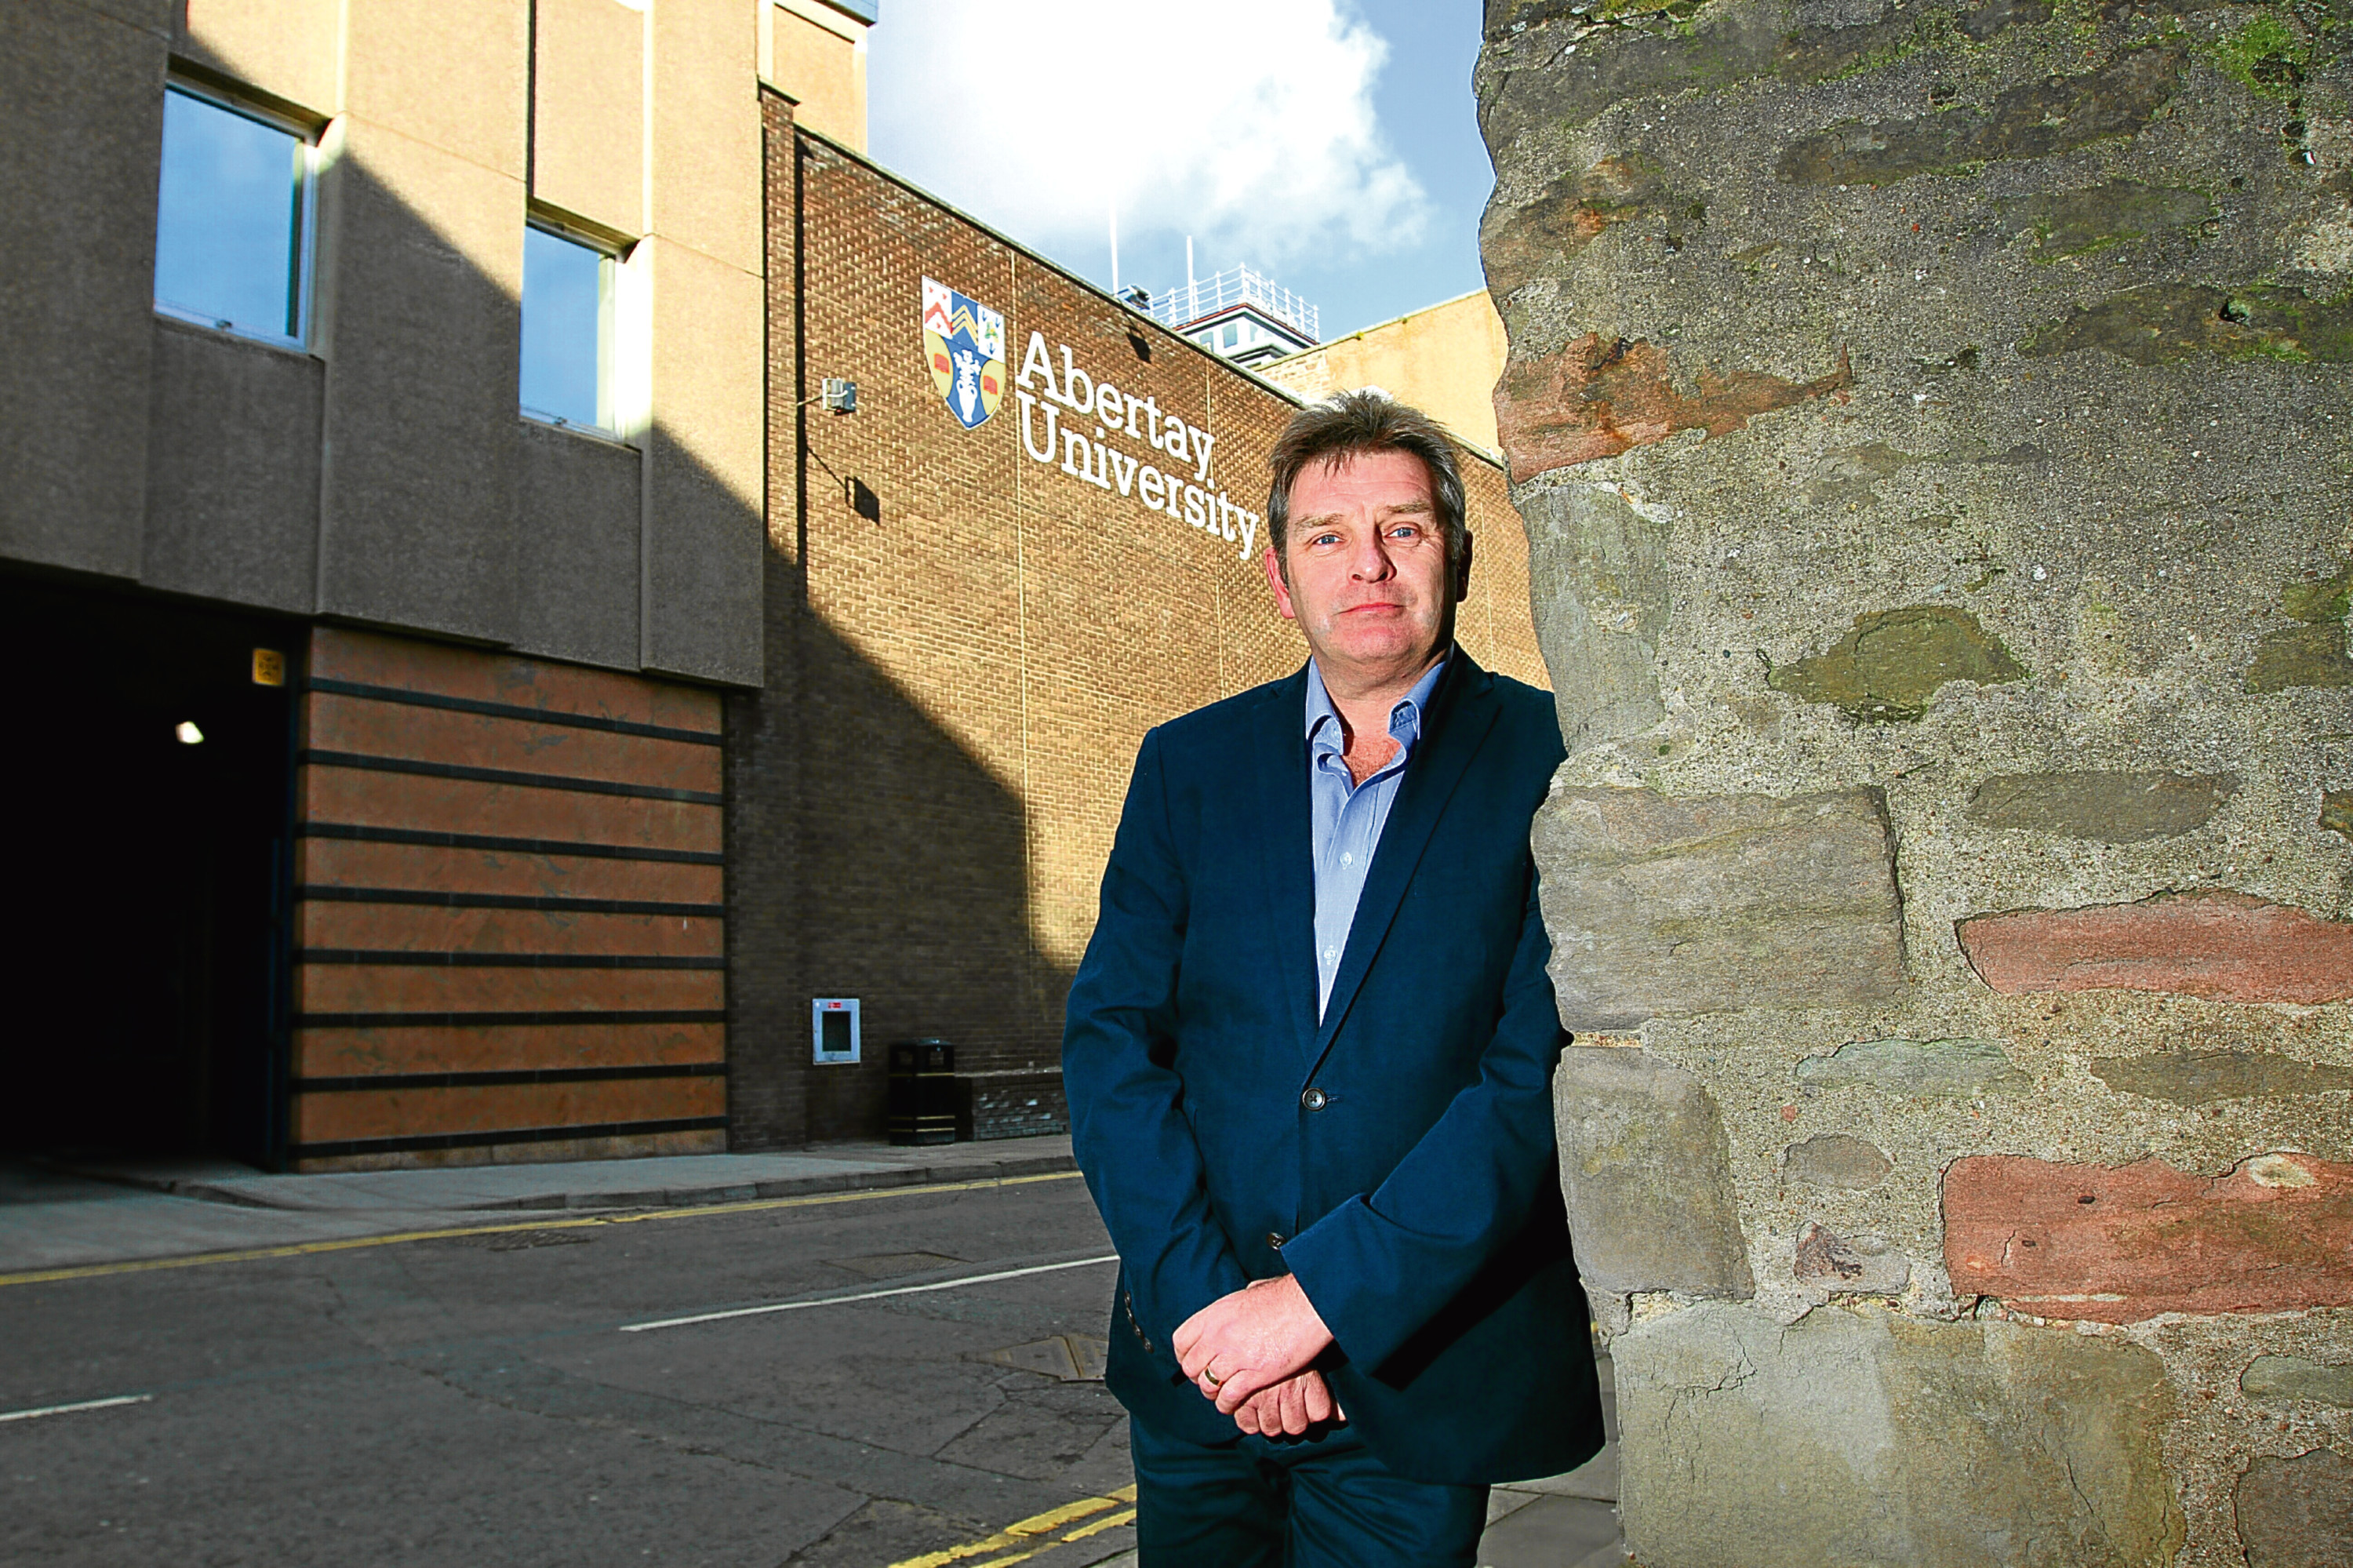 Neil Coupar spoke to the Tele about his career and the cases he has worked on.